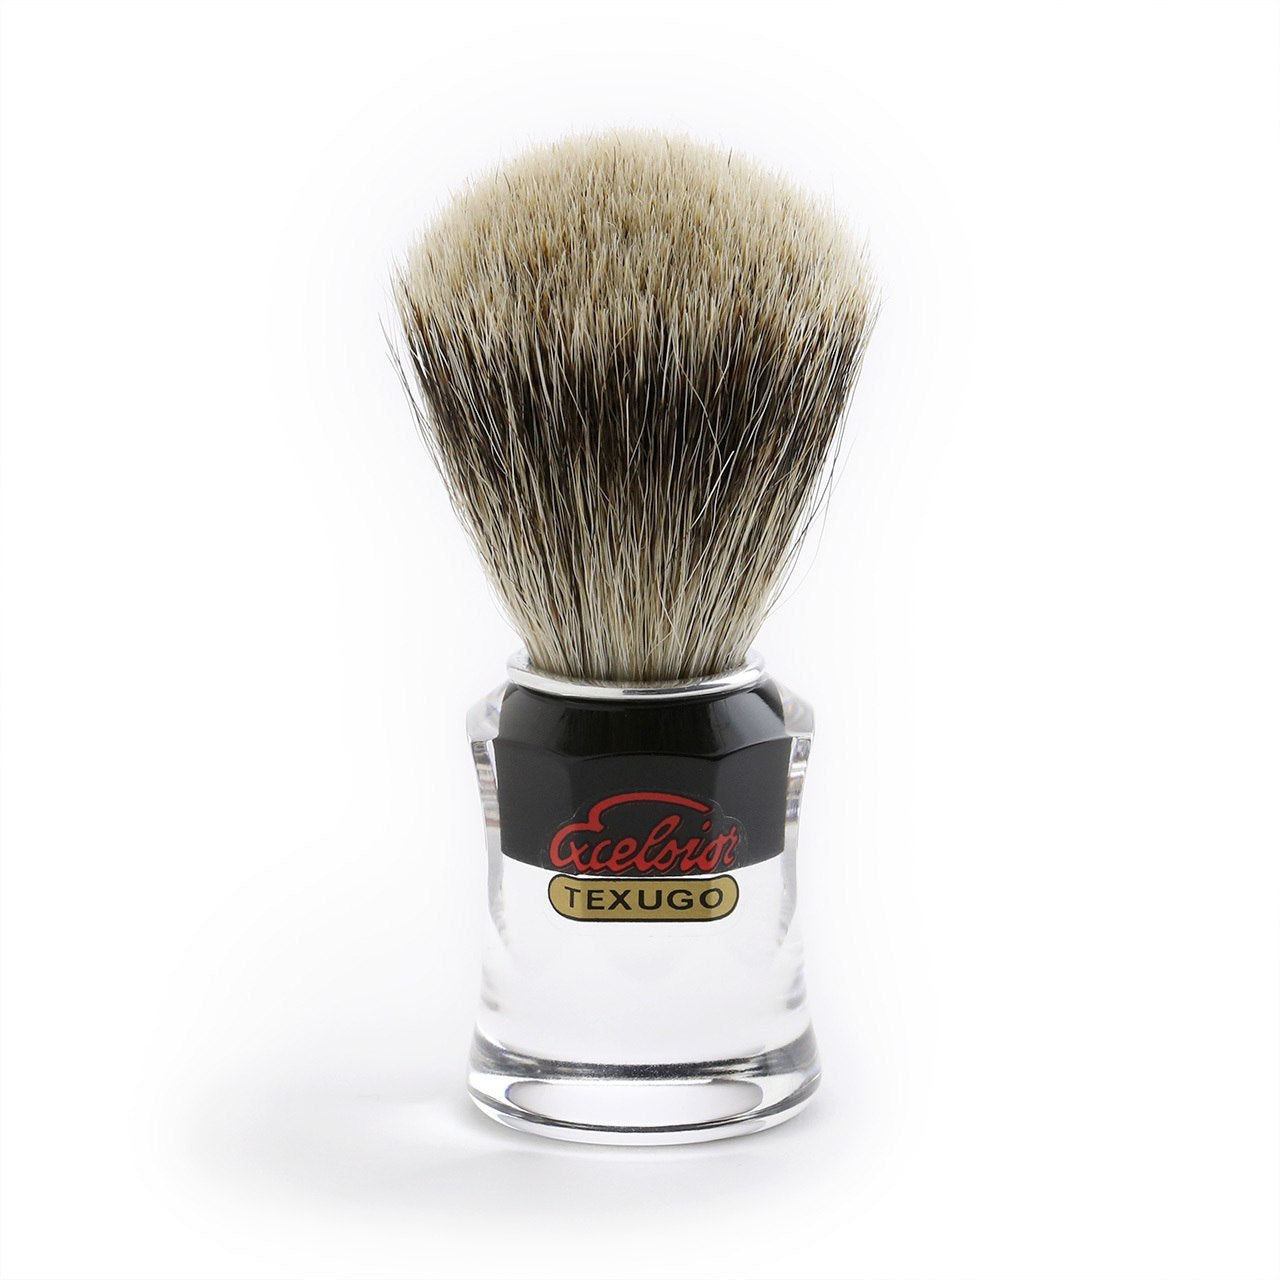 Semogue Silver Tip Badger Shaving Brush with Clear/black retro acrylic handle